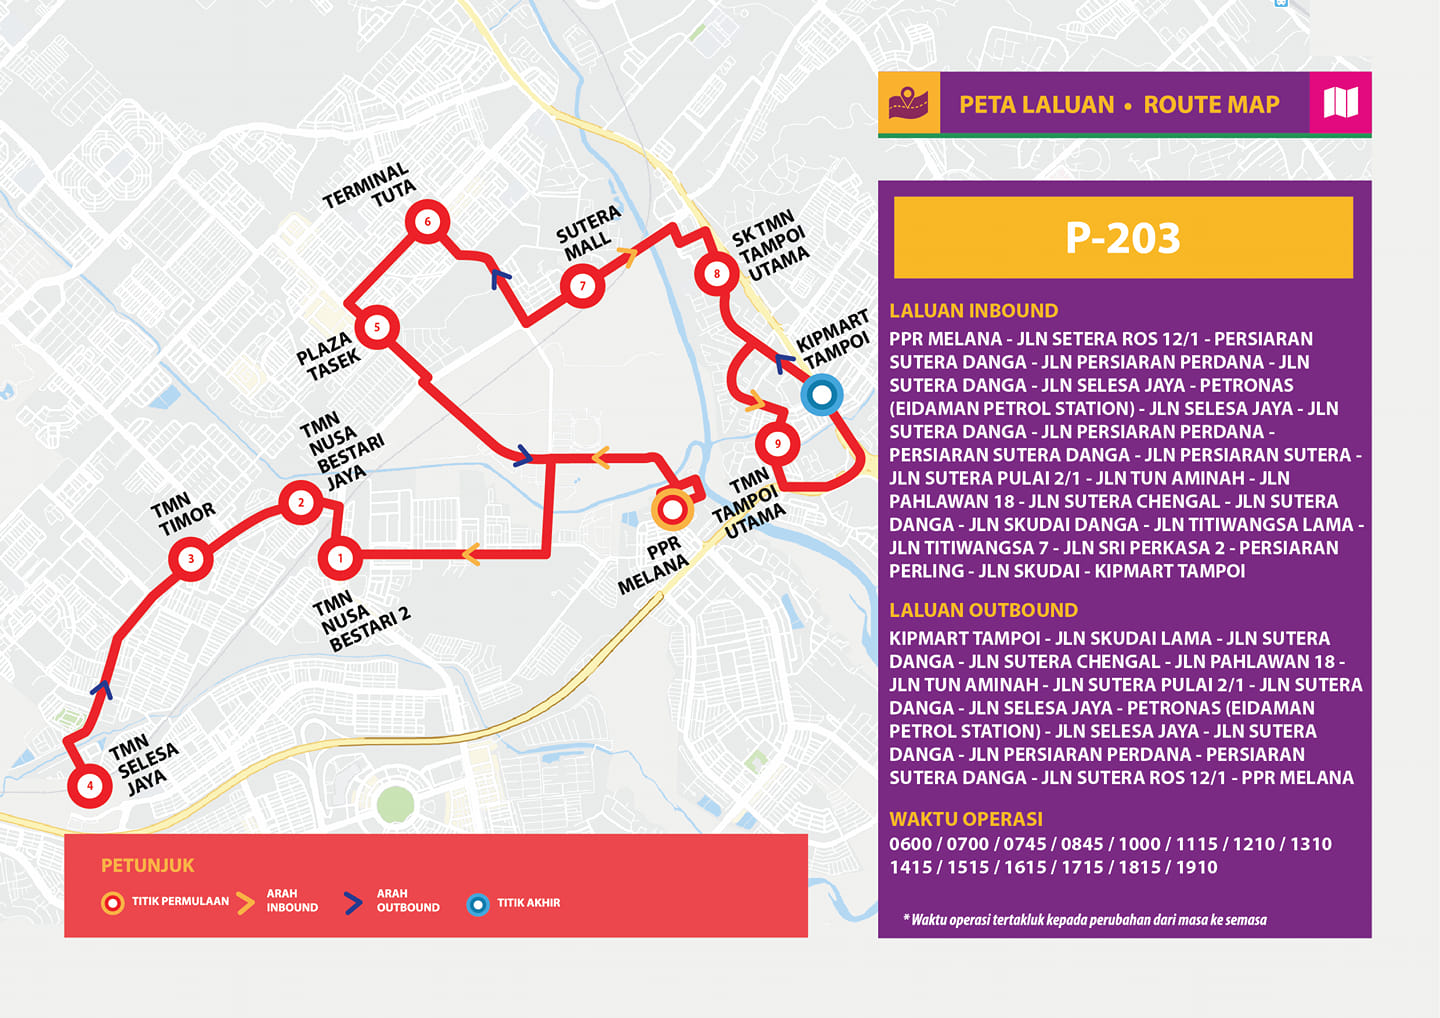 New route map for Bas Muafakat Johor P203 from 1 May 2019